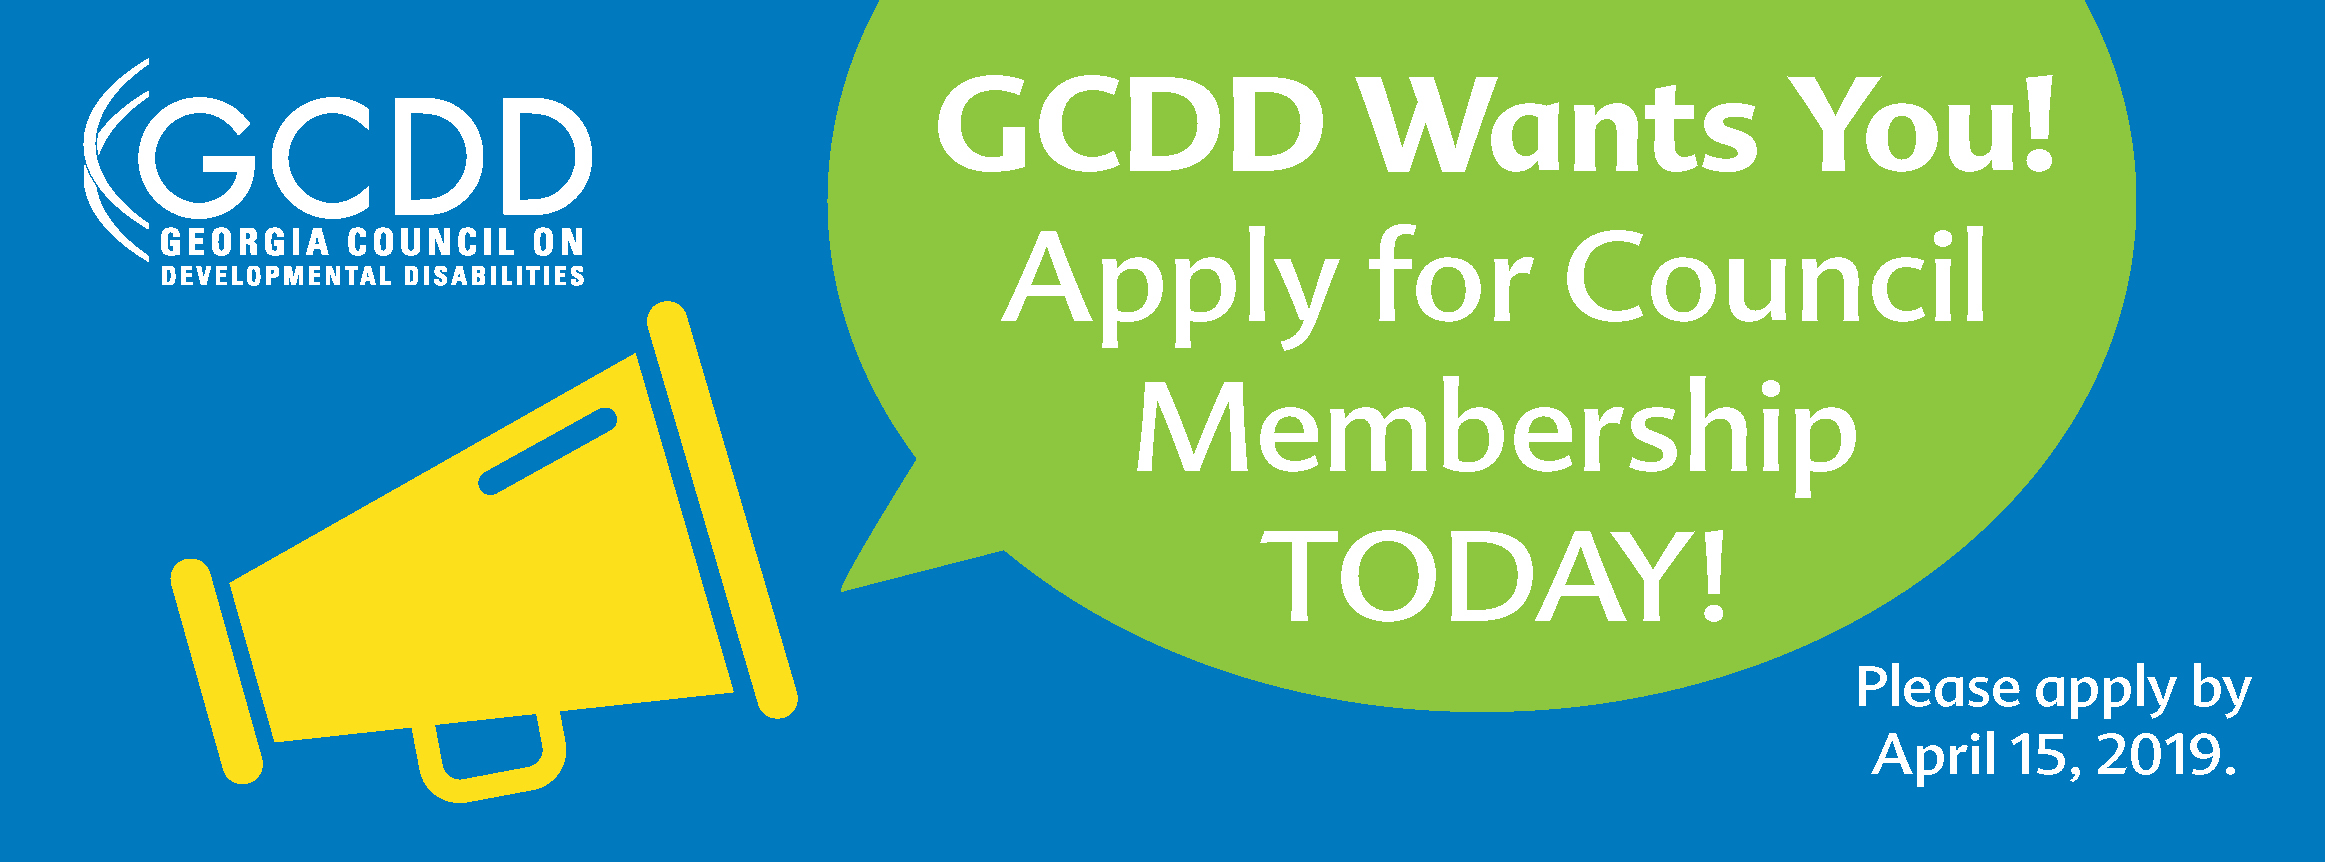 GCDD Wants You! Apply for Council Membership TODAY